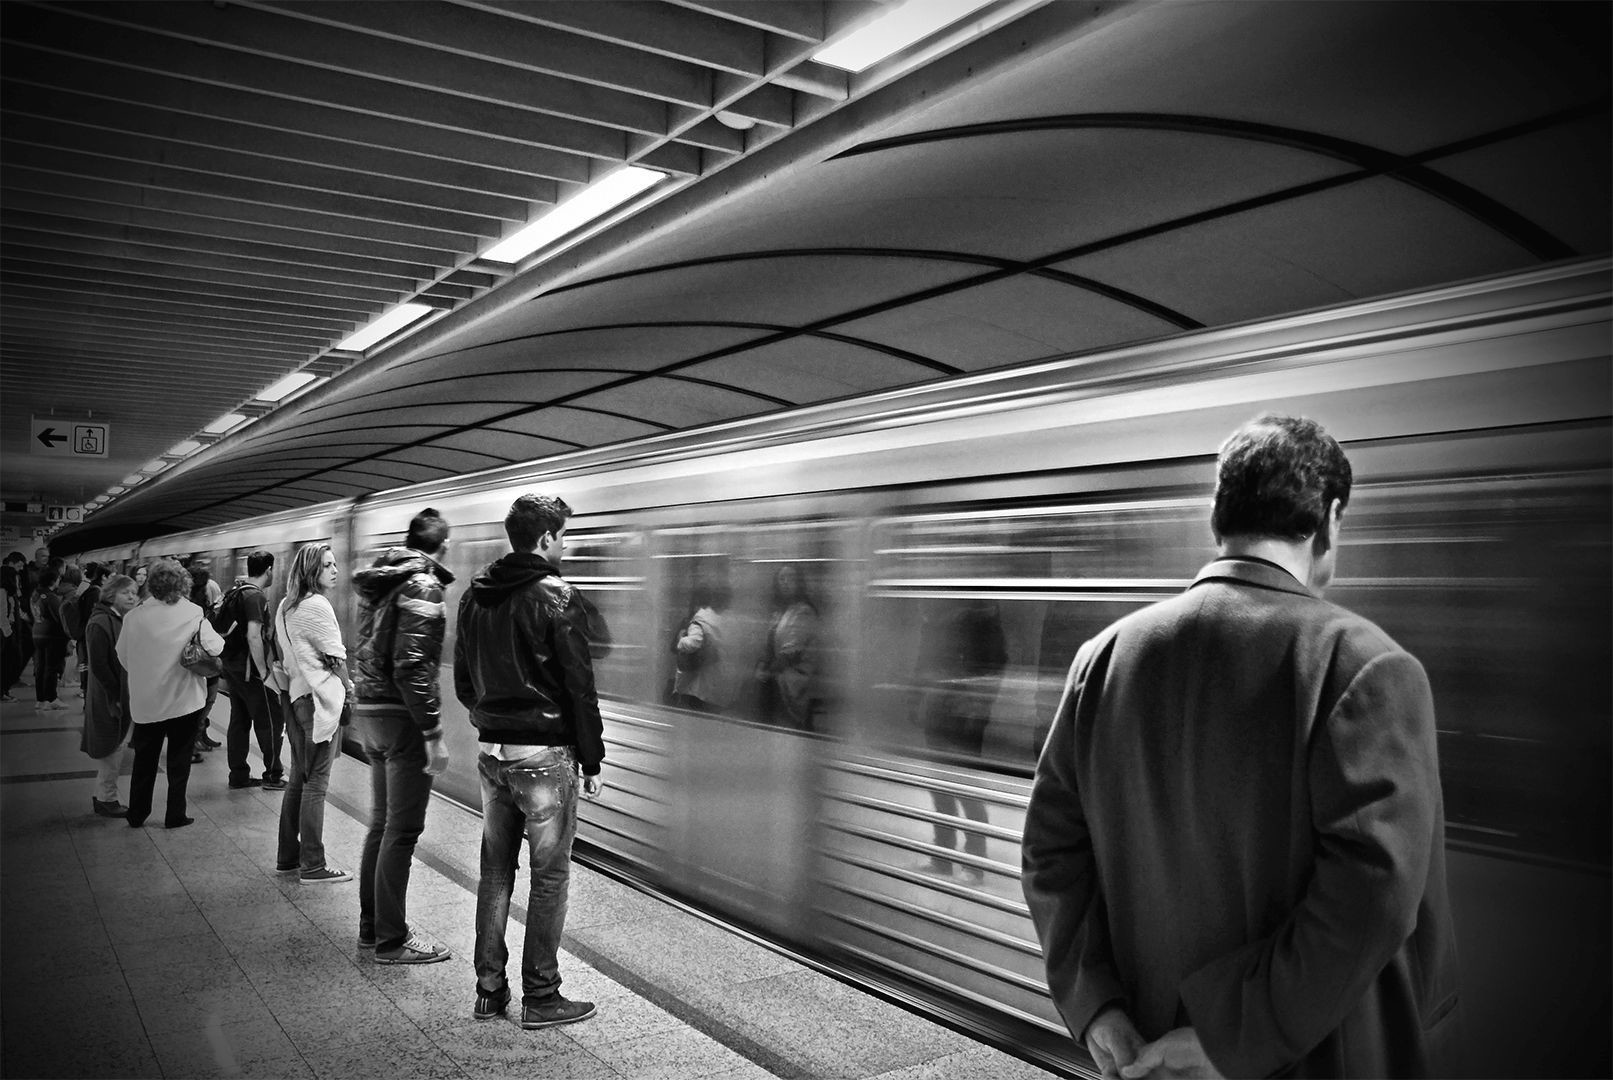 the subway story A subway story 176 likes two people recount the story of how they met on the new york city subway 3 years prior.